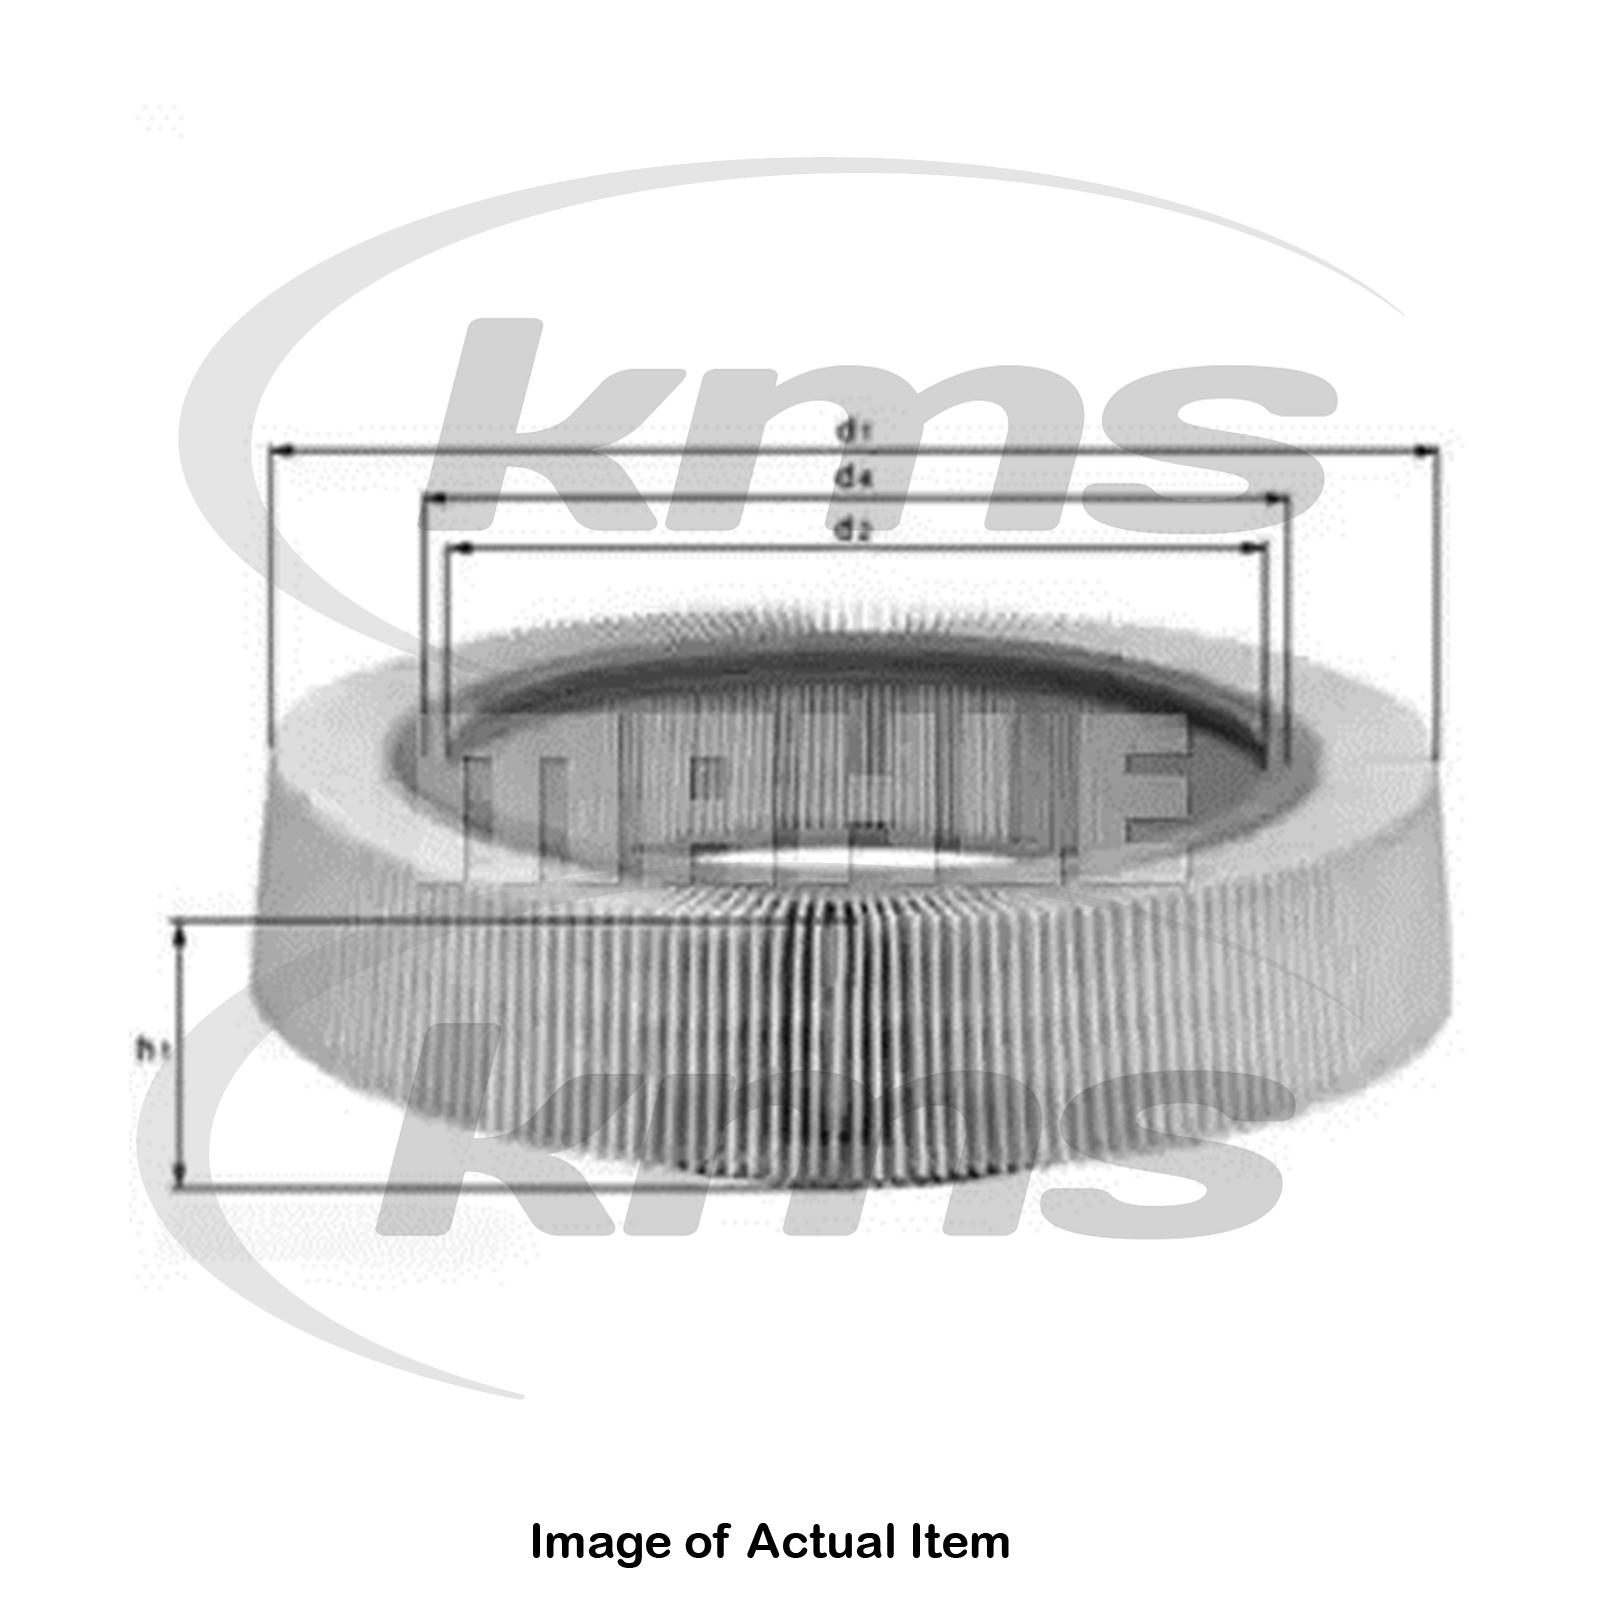 Details About New Genuine Mahle Original Air Filter Lx 61 Top Quality Mercedes Benz 230ce Fuel Sentinel 190 Saloon Kombi Coupe E 18 20 23 200